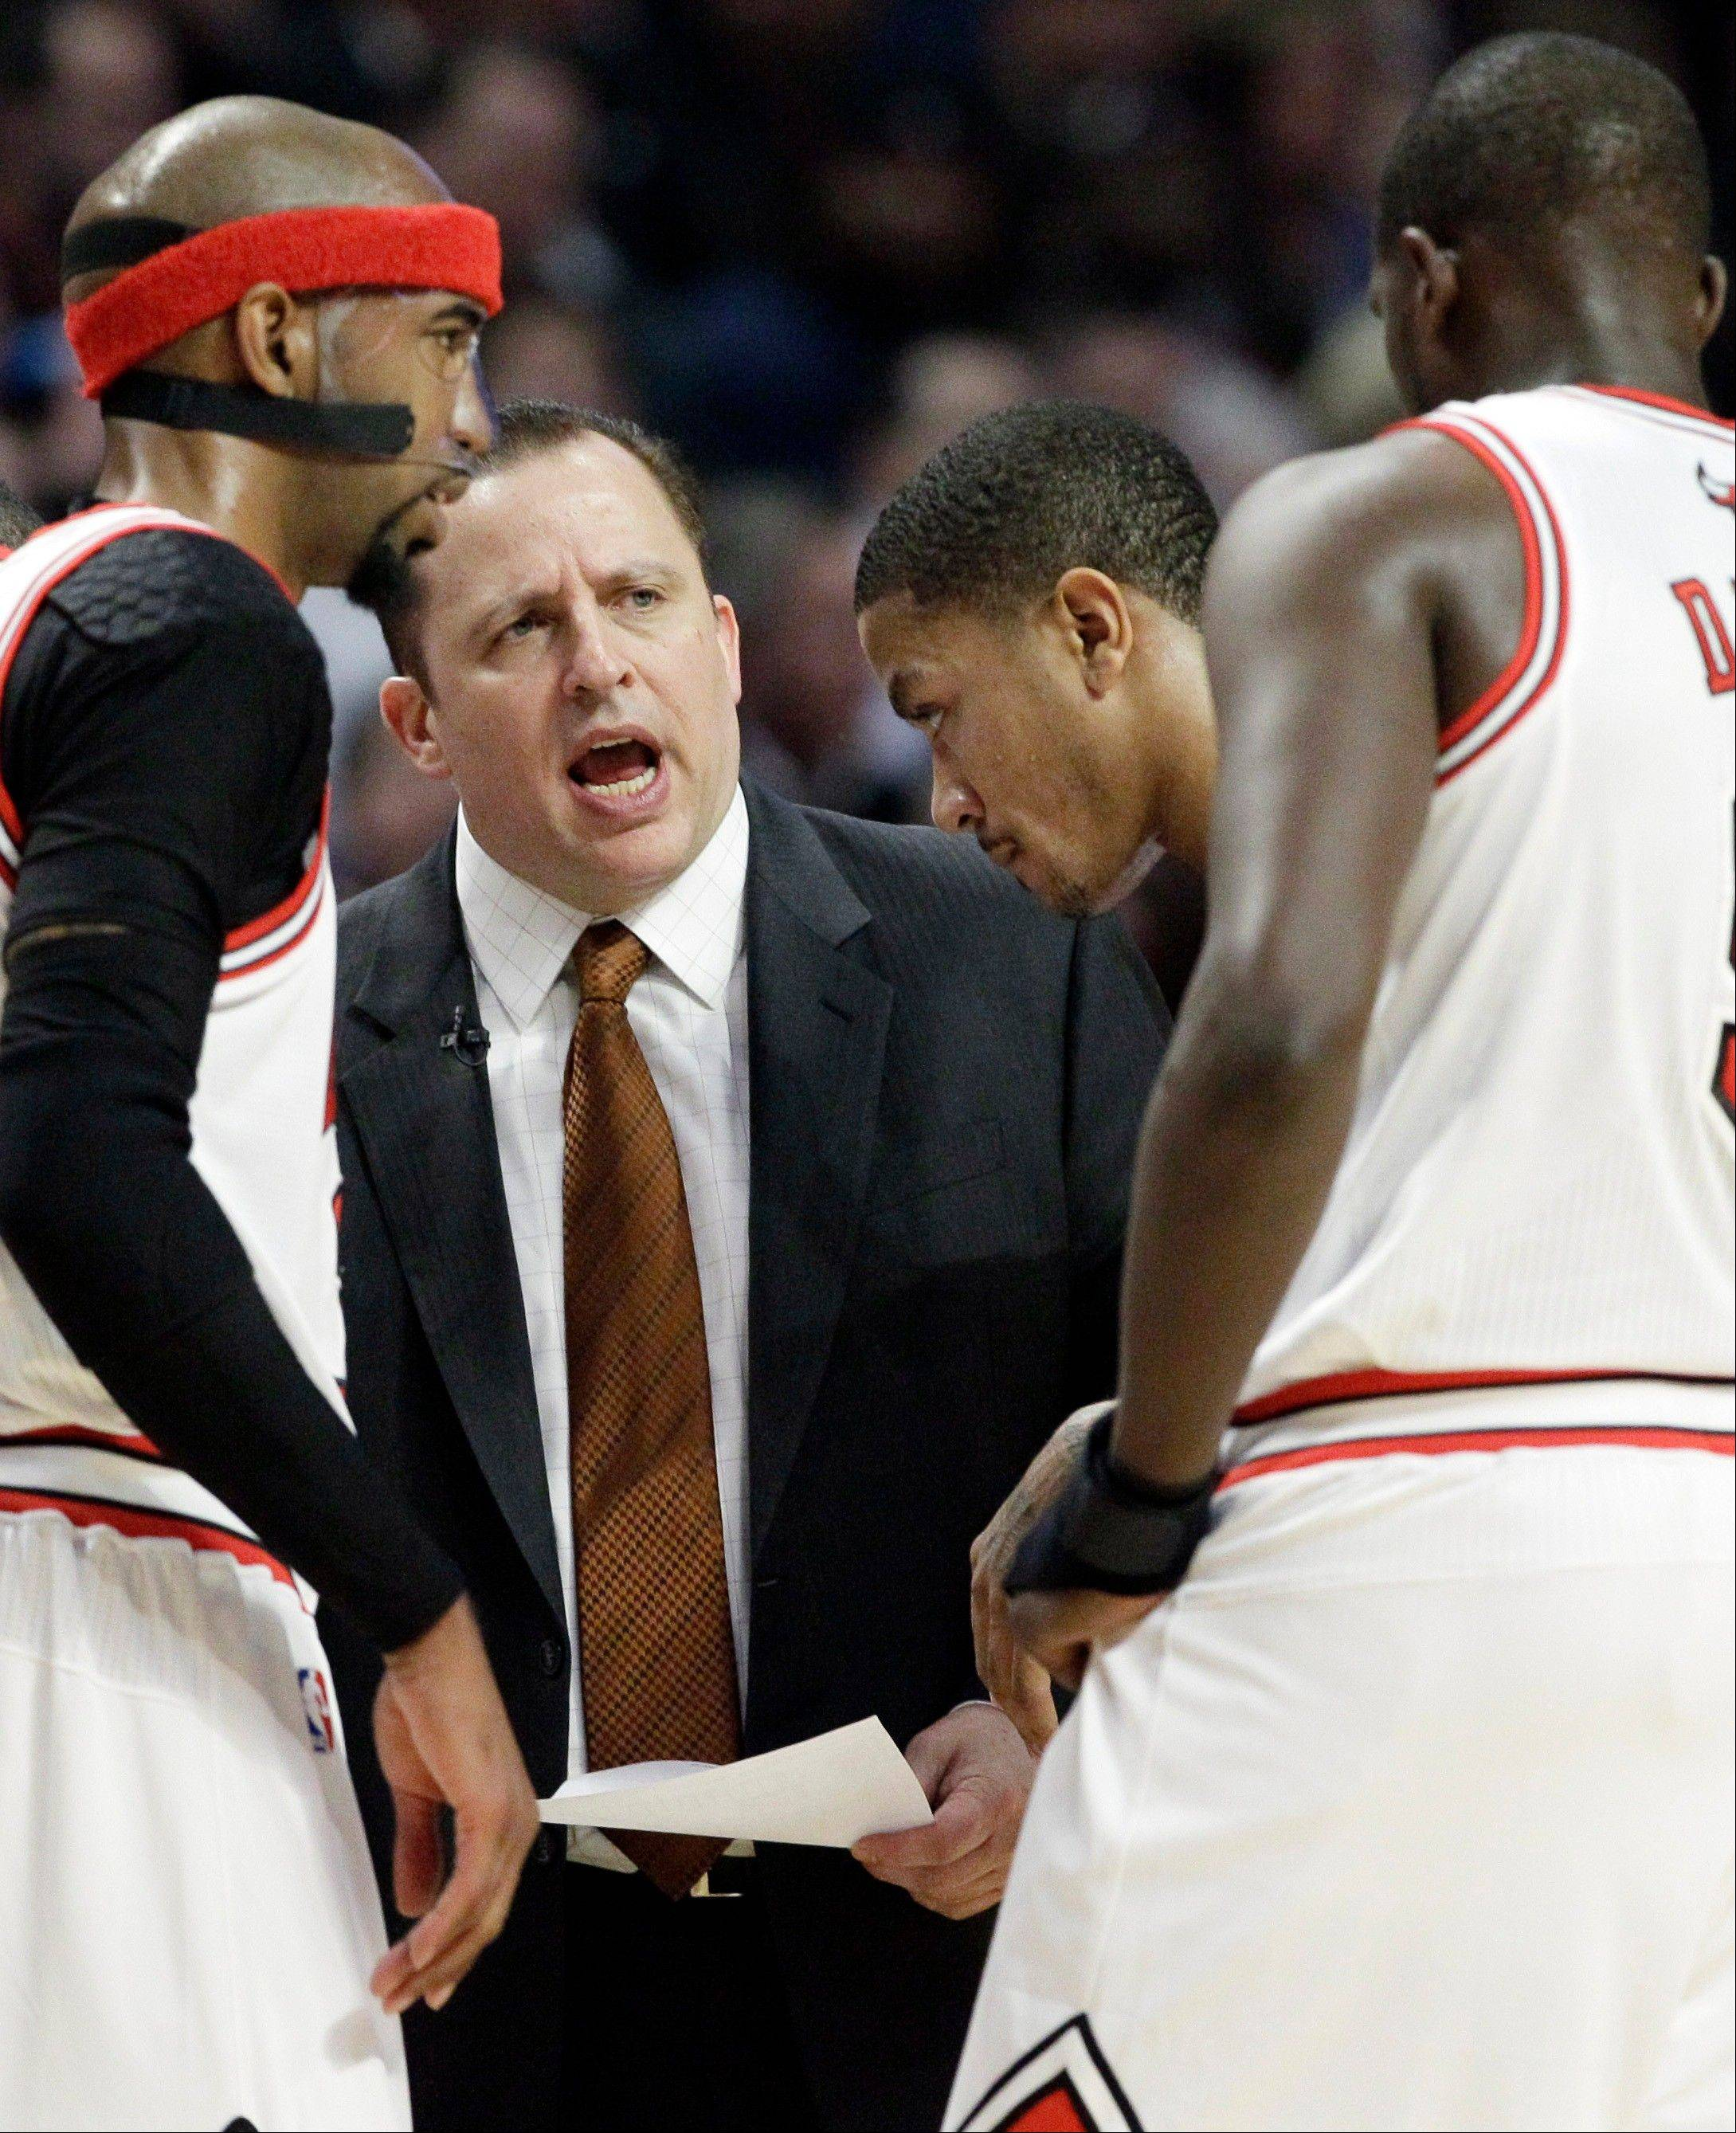 Coach Tom Thibodeau talks strategy with Rip Hamilton, left, Derrick Rose and Luol Deng, right, during Thursday's game against the Heat at the United Center. The Bulls won 96-86 in overtime.